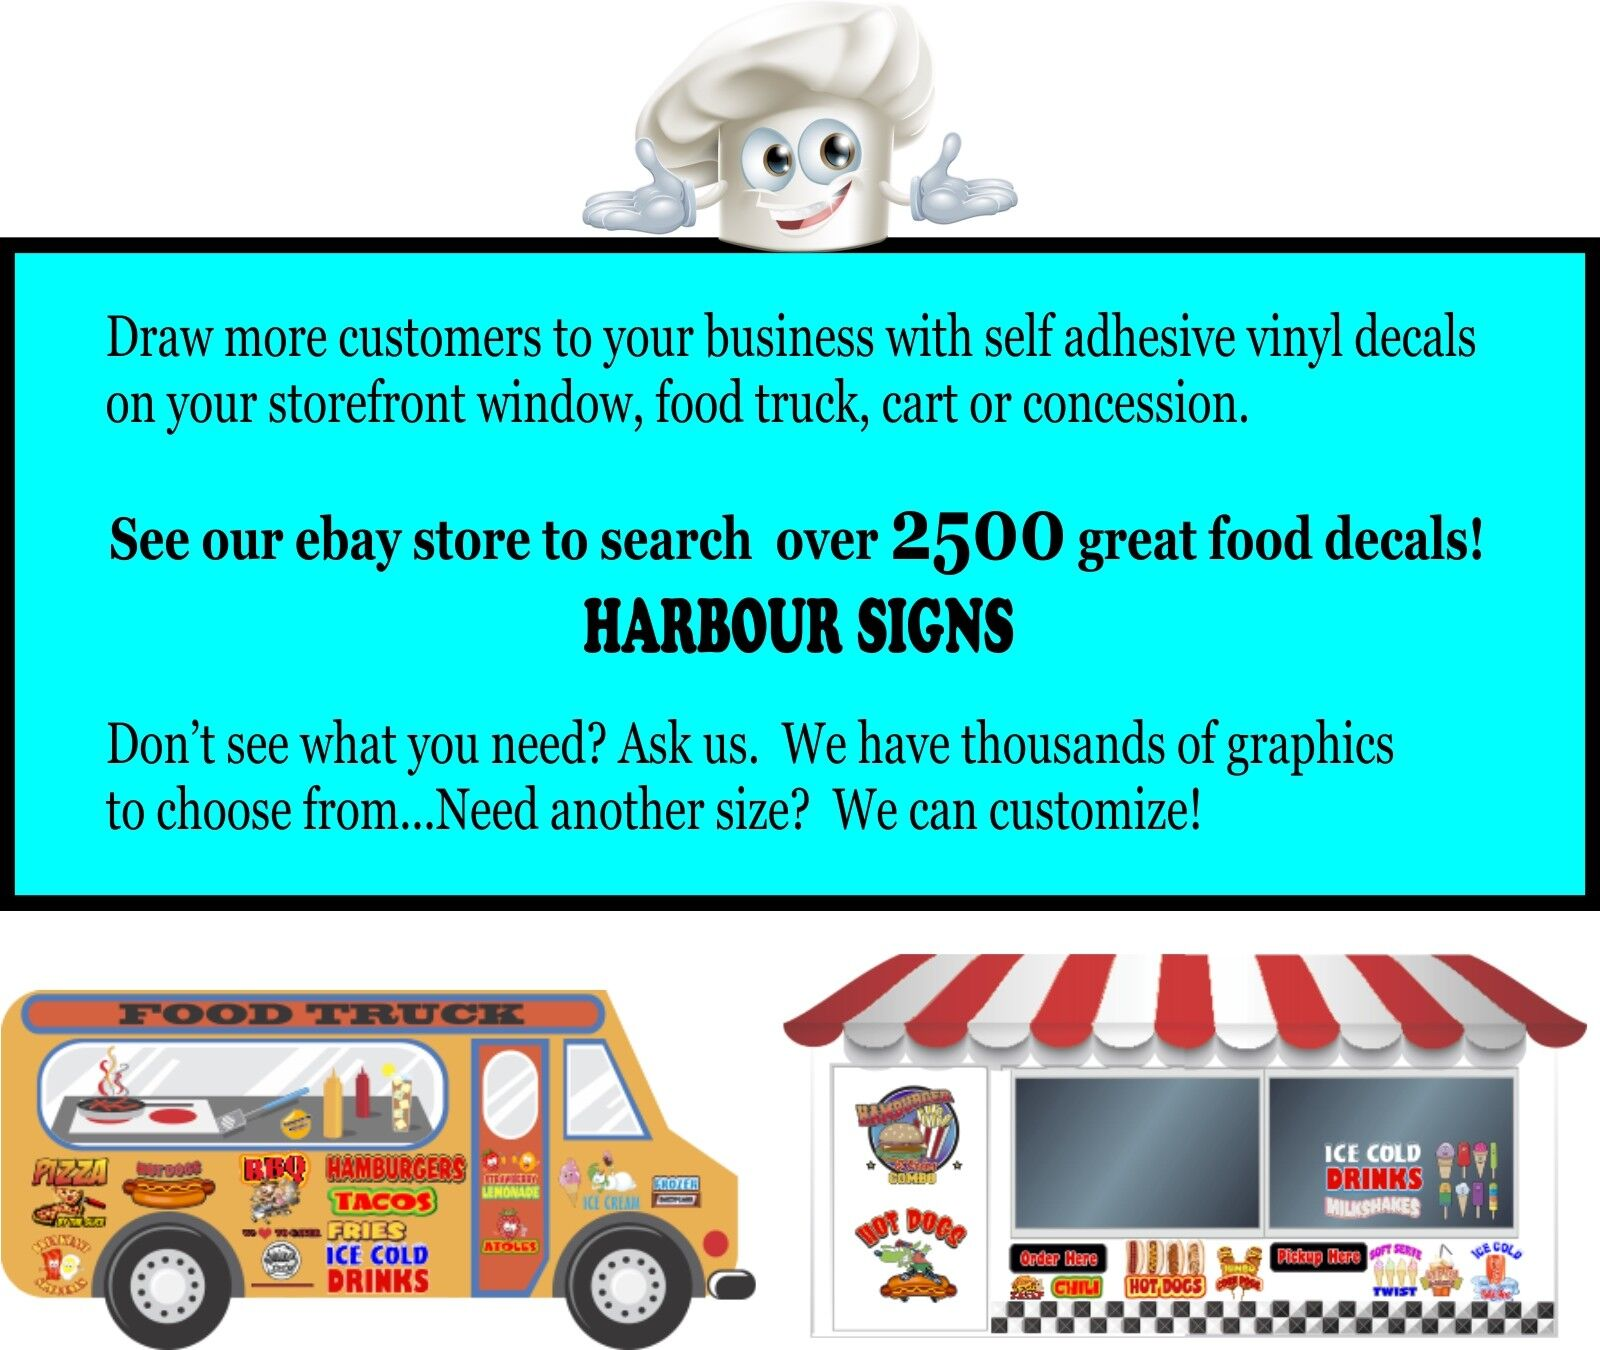 Hot Dogs DECAL Choose Your Size Food Truck Concession Vinyl Sticker